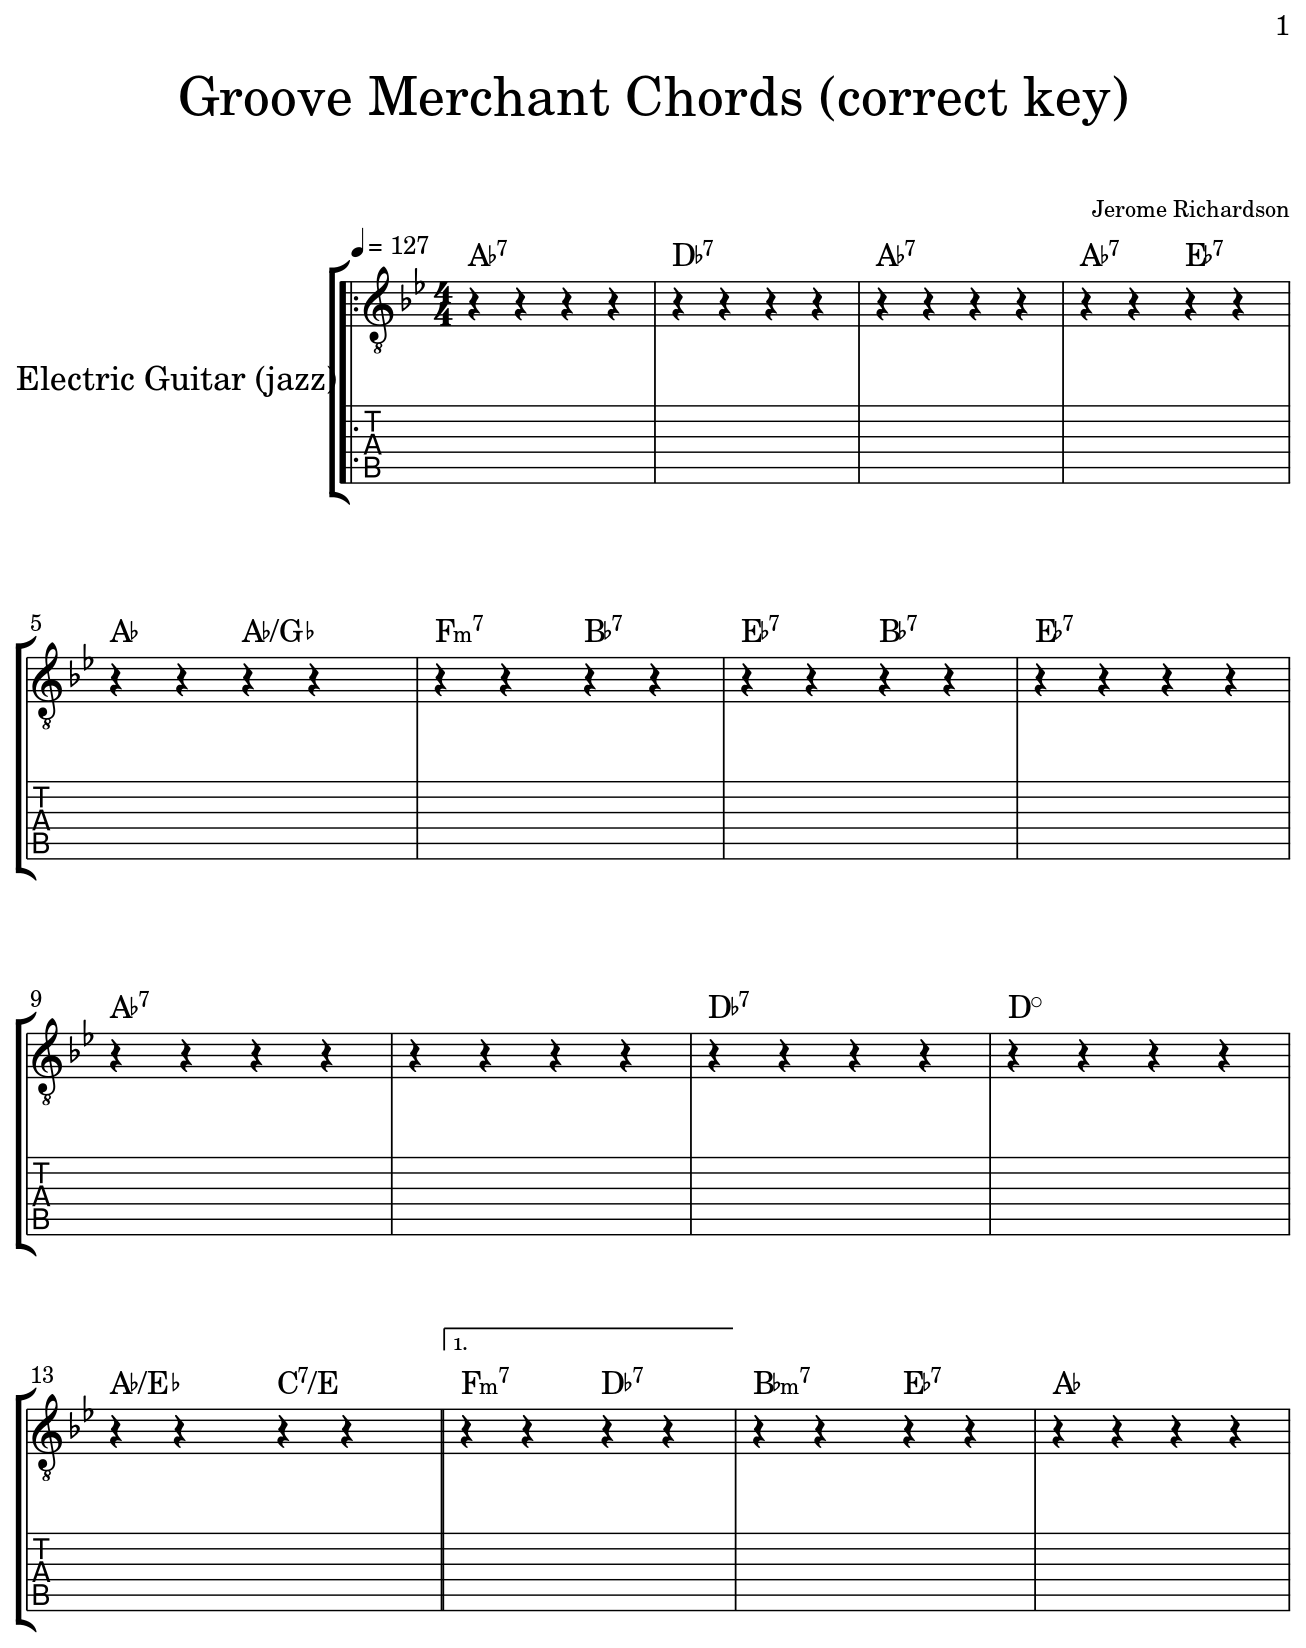 groove merchant chords correct key sheet music for electric guitar jazz. Black Bedroom Furniture Sets. Home Design Ideas